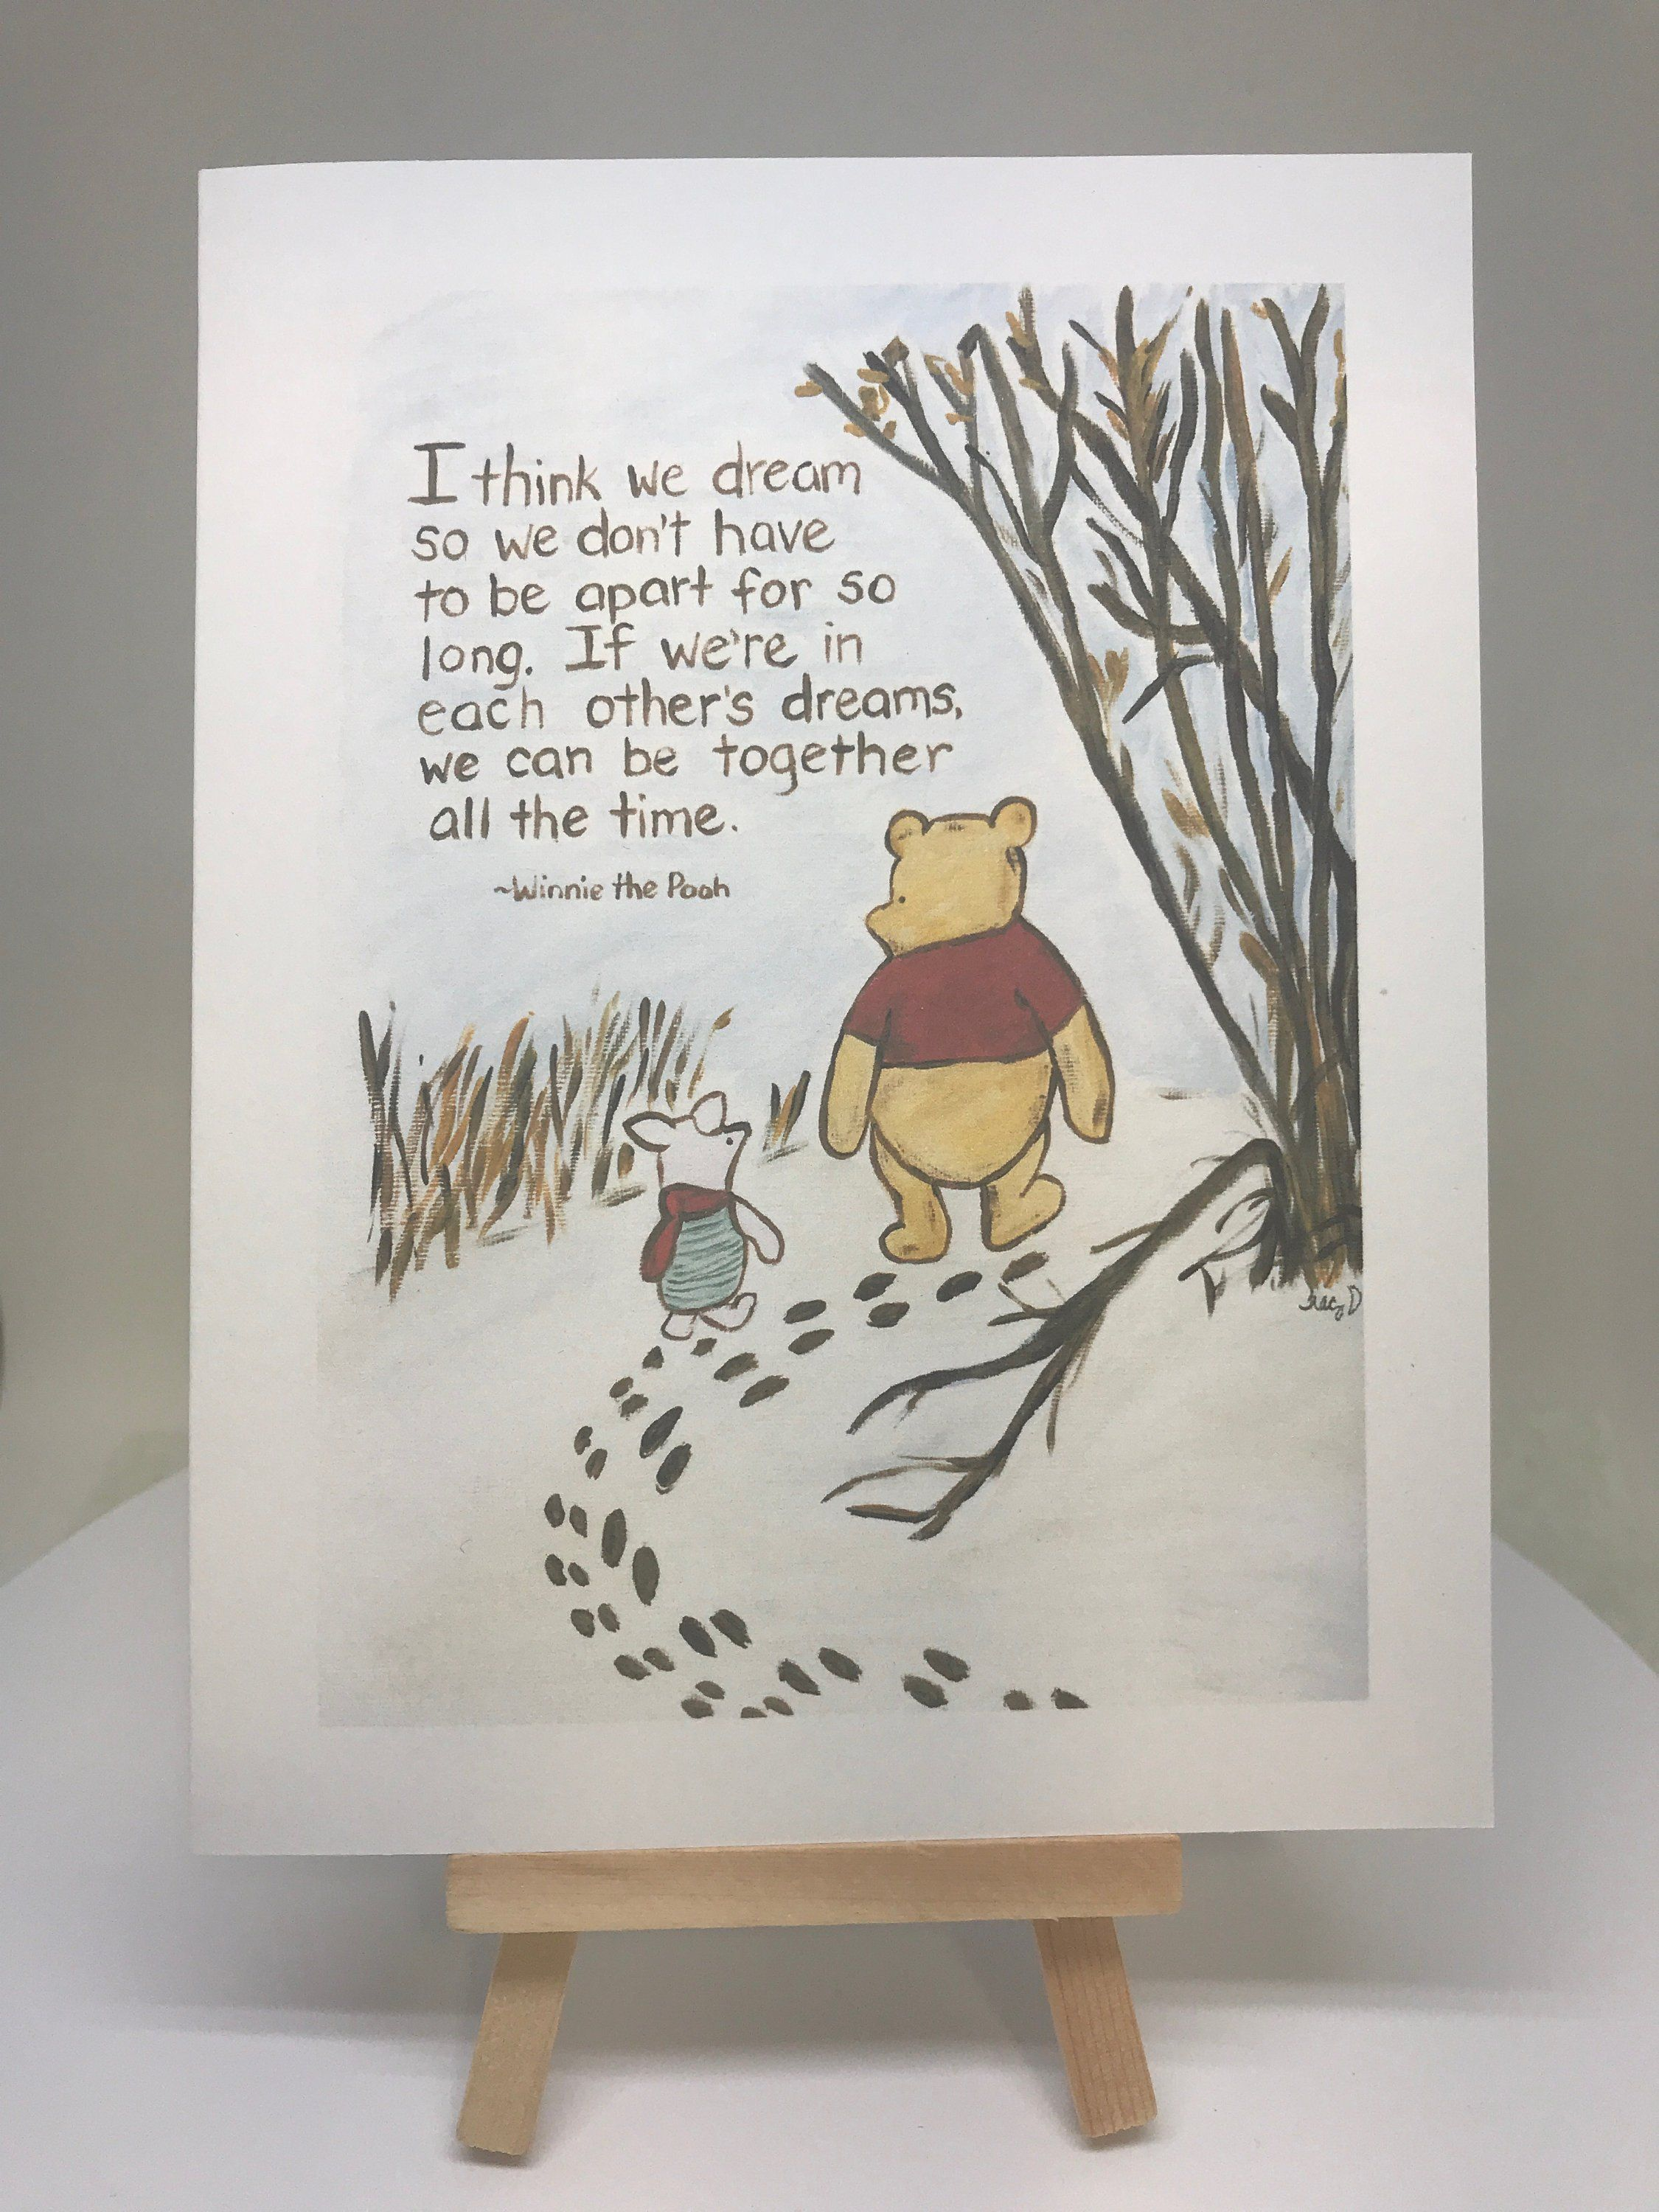 miss you Winnie the Pooh thinking of you, warm tho